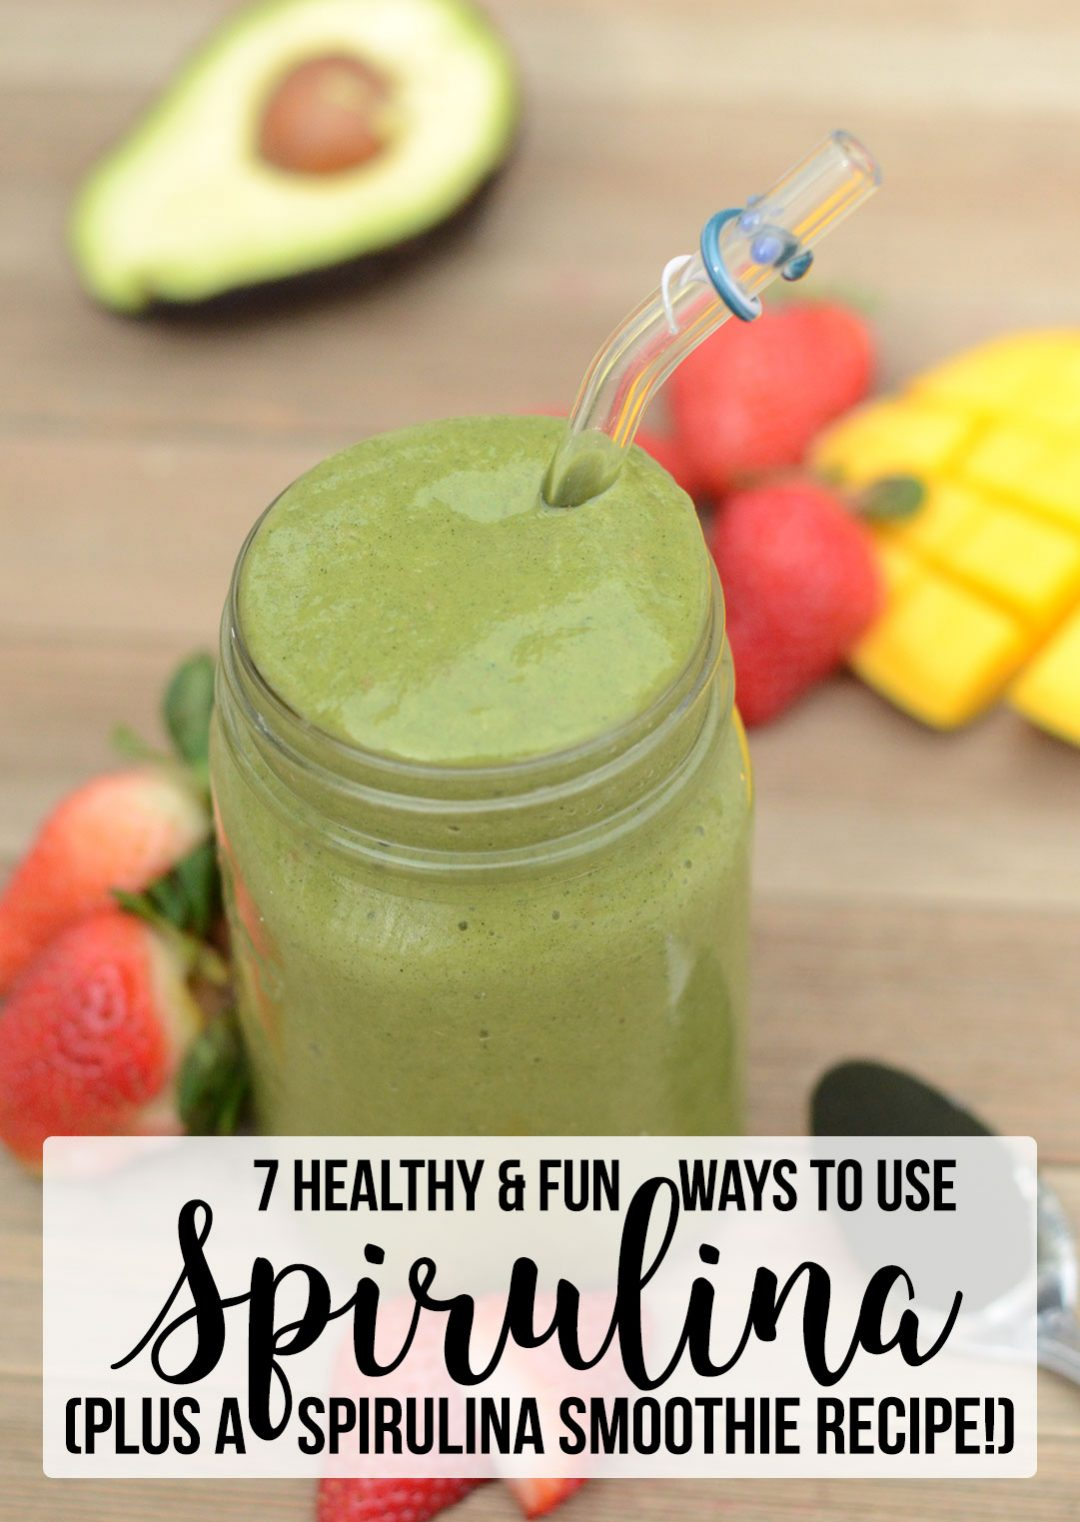 Healthy & Fun Ways To Use Spirulina (plus a spirulina smoothie recipe!) | It may be the most nutrient-dense food on the planet... but that doesn't do much good unless you know how to use it! Here are 7 nutritious and fun ways to use spirulina, including a spirulina smoothie recipe! (You're going to be shocked by #7!) | WildernessFamilyNaturals.com